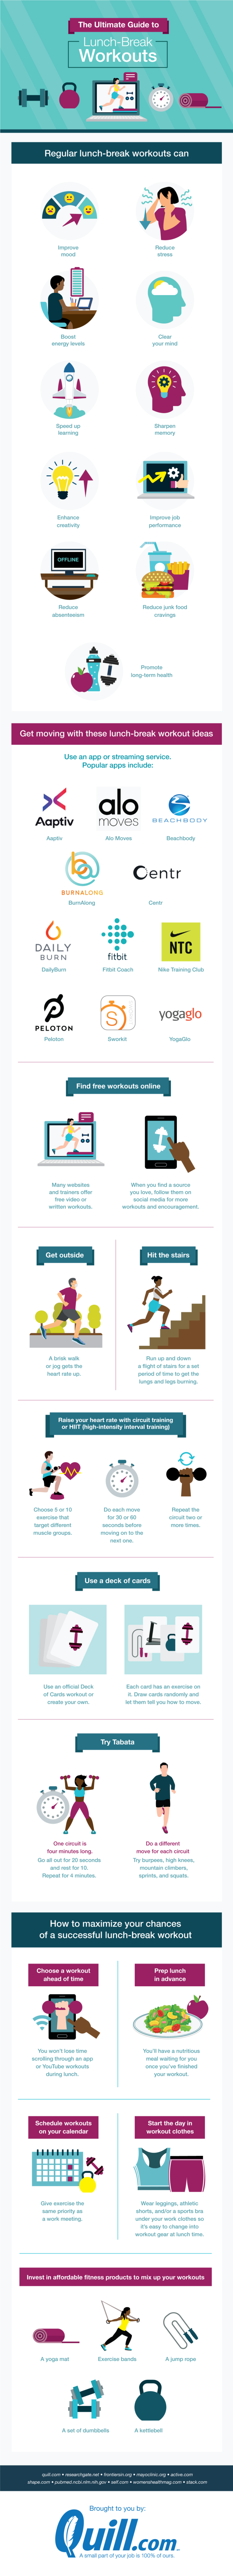 Master your lunch-break workout without going to the gym